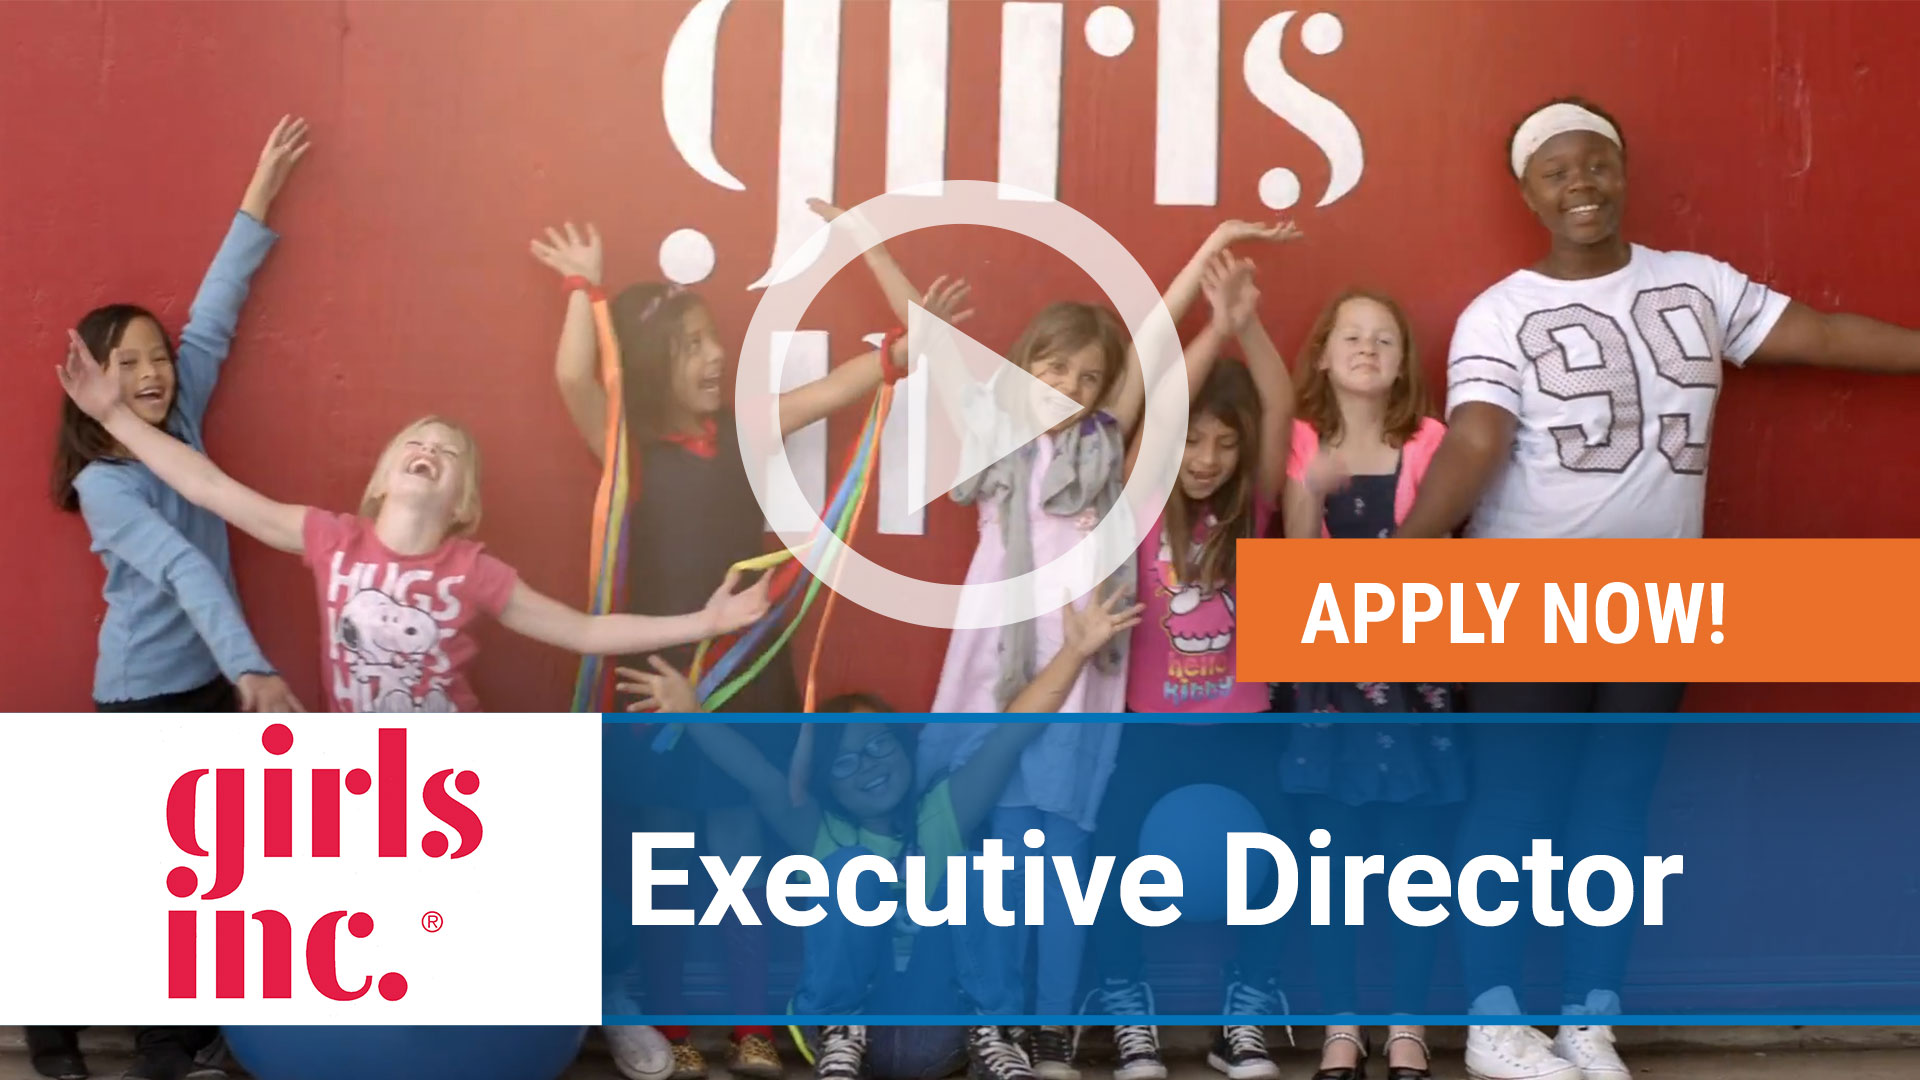 Watch our careers video for available job opening Executive Director for Girls Inc. in Washington Metropolitan Area, DC